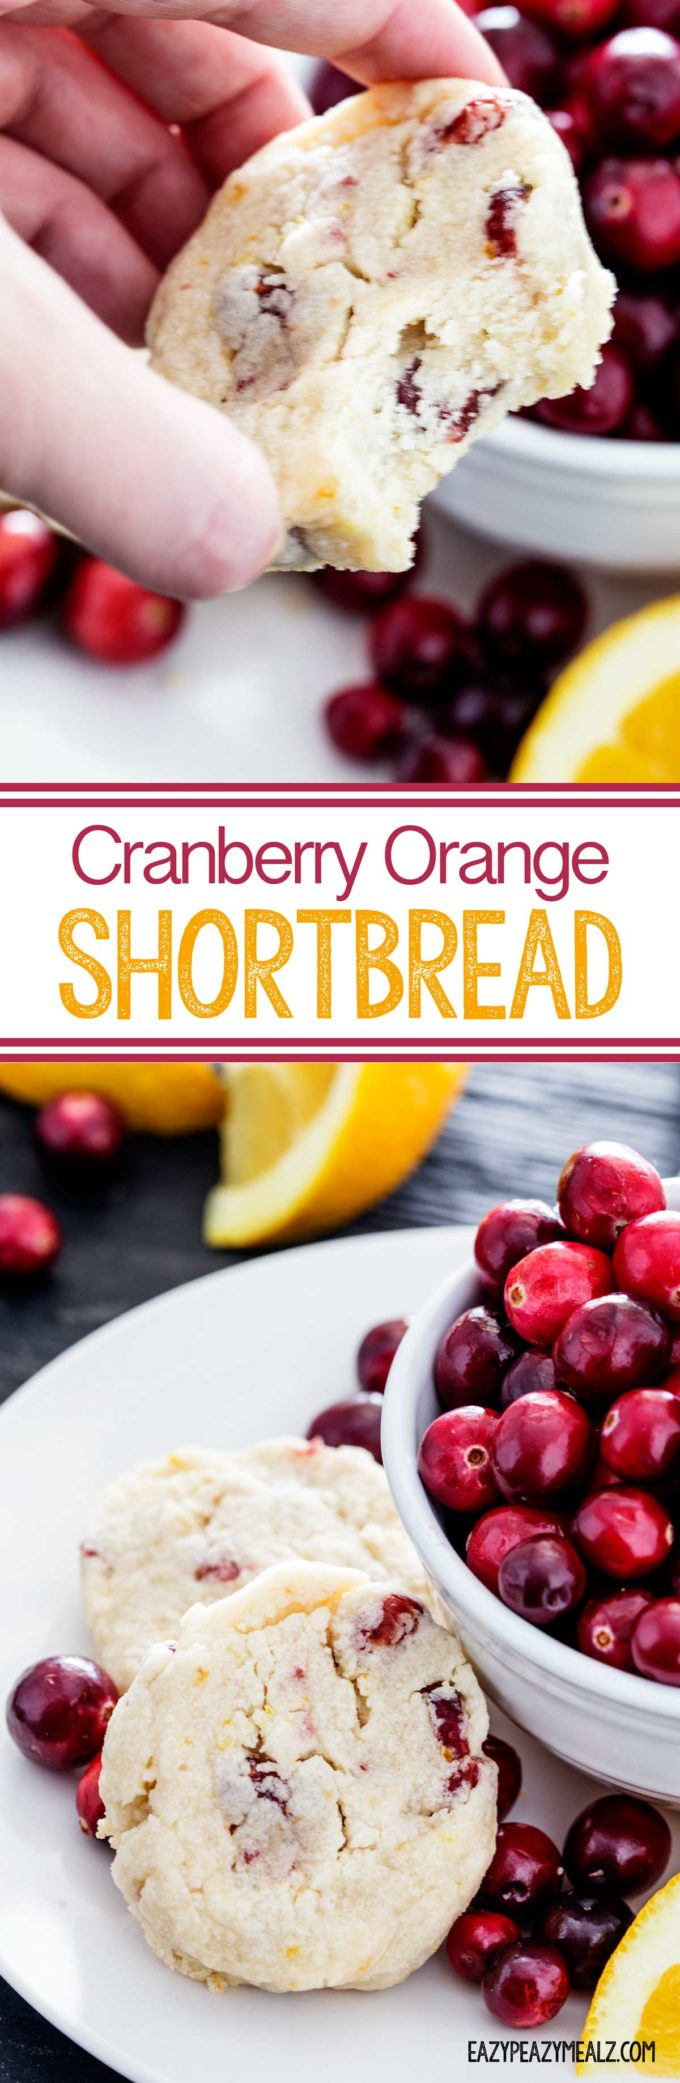 An easy to make, and flavorful Cranberry Orange Shortbread. Great for holiday entertaining. Make these cookies ahead and freeze for easier prep during the holidays.